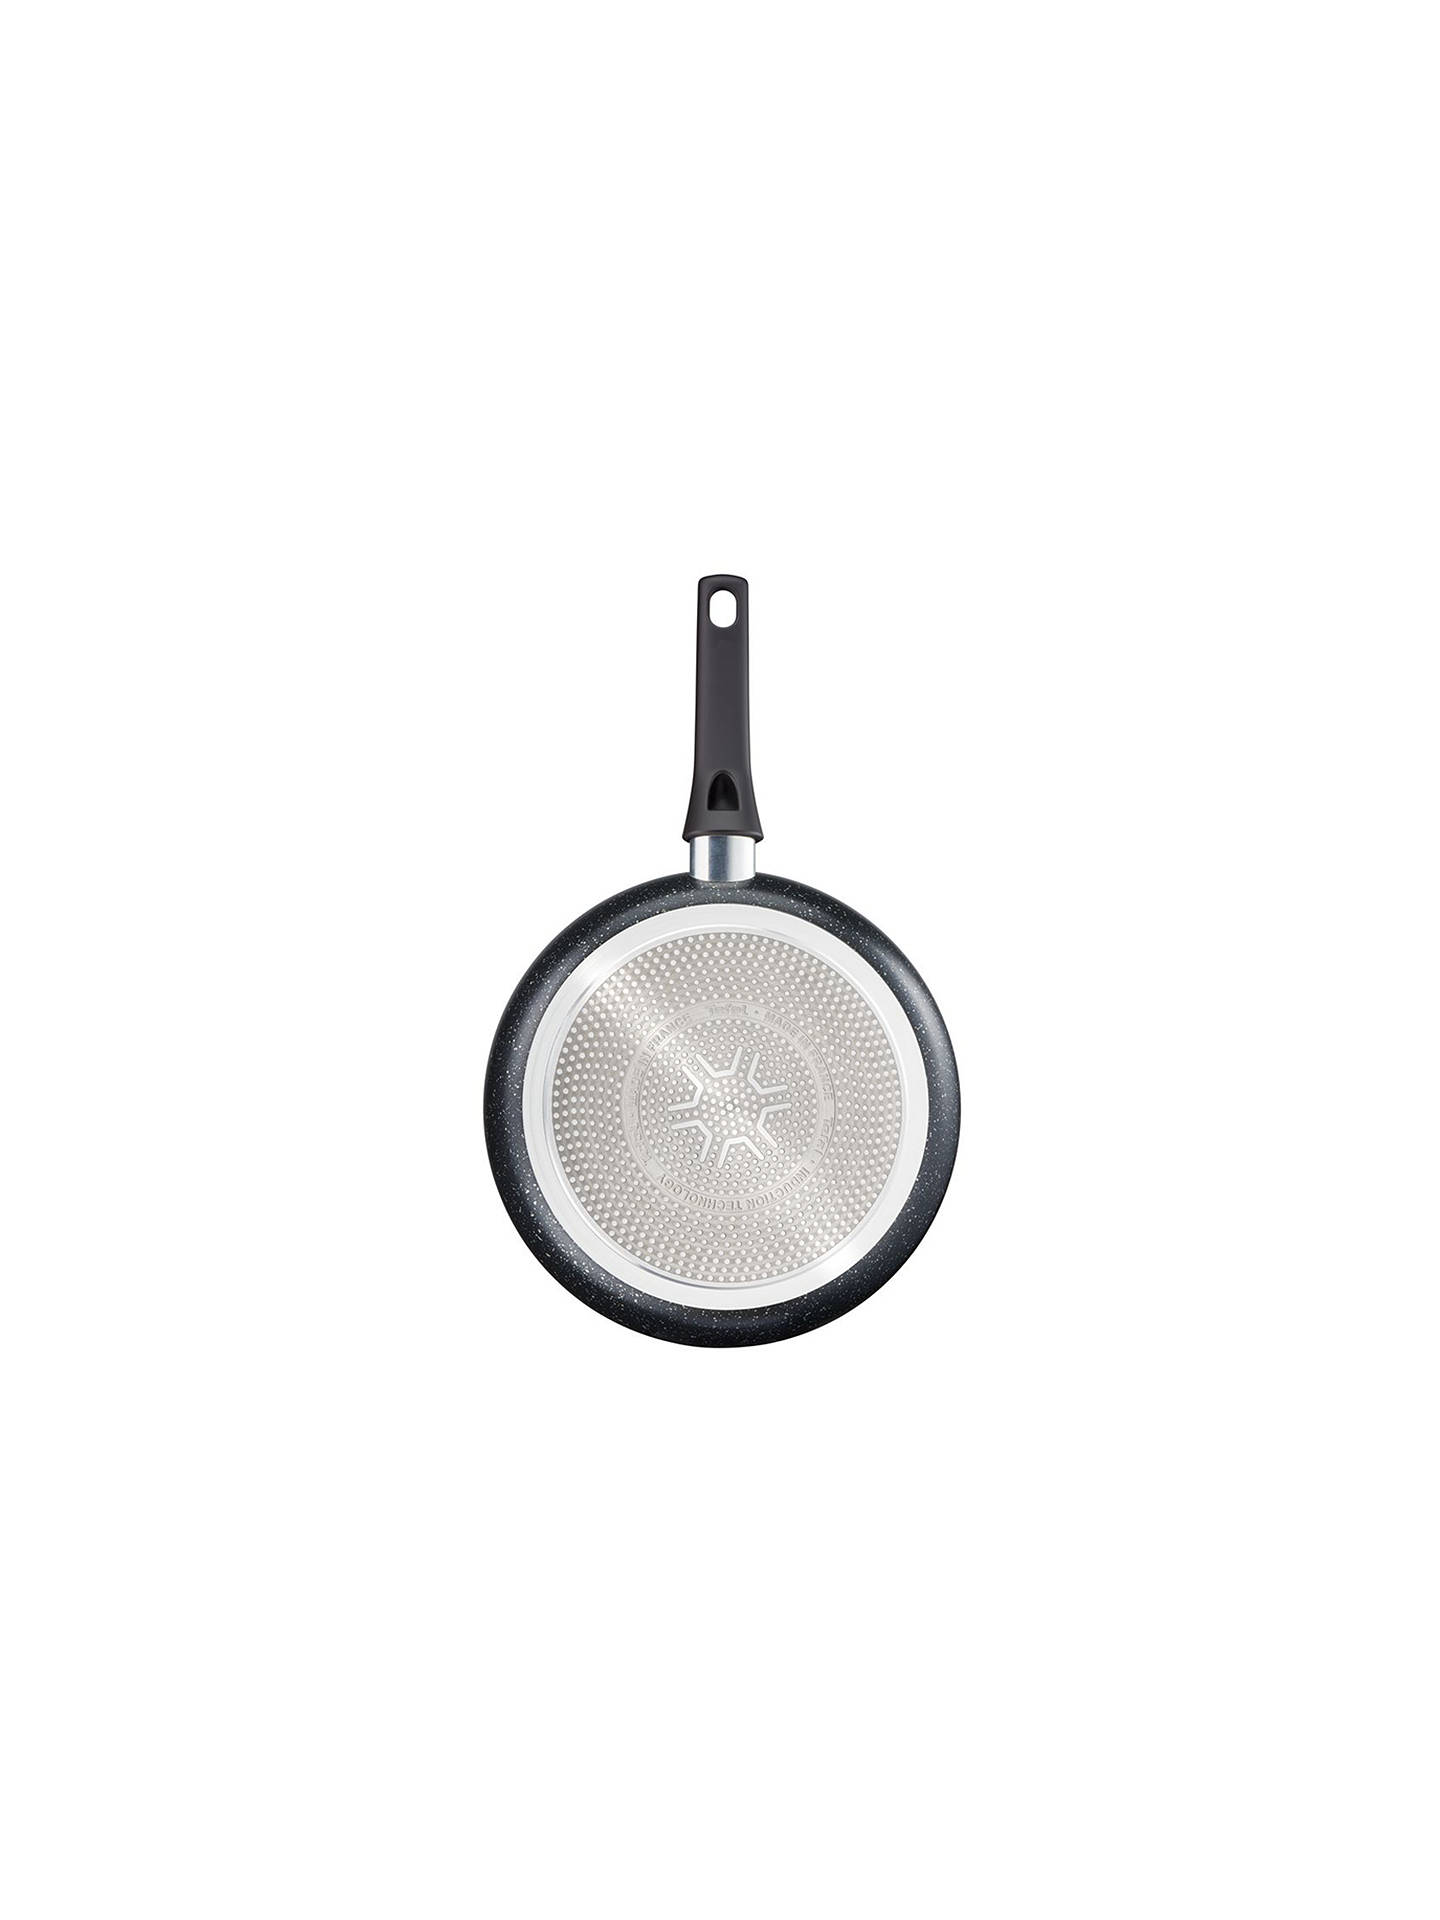 BuyTefal Authentic Aluminium Non-Stick Frying Pan, Black, 24cm Online at johnlewis.com